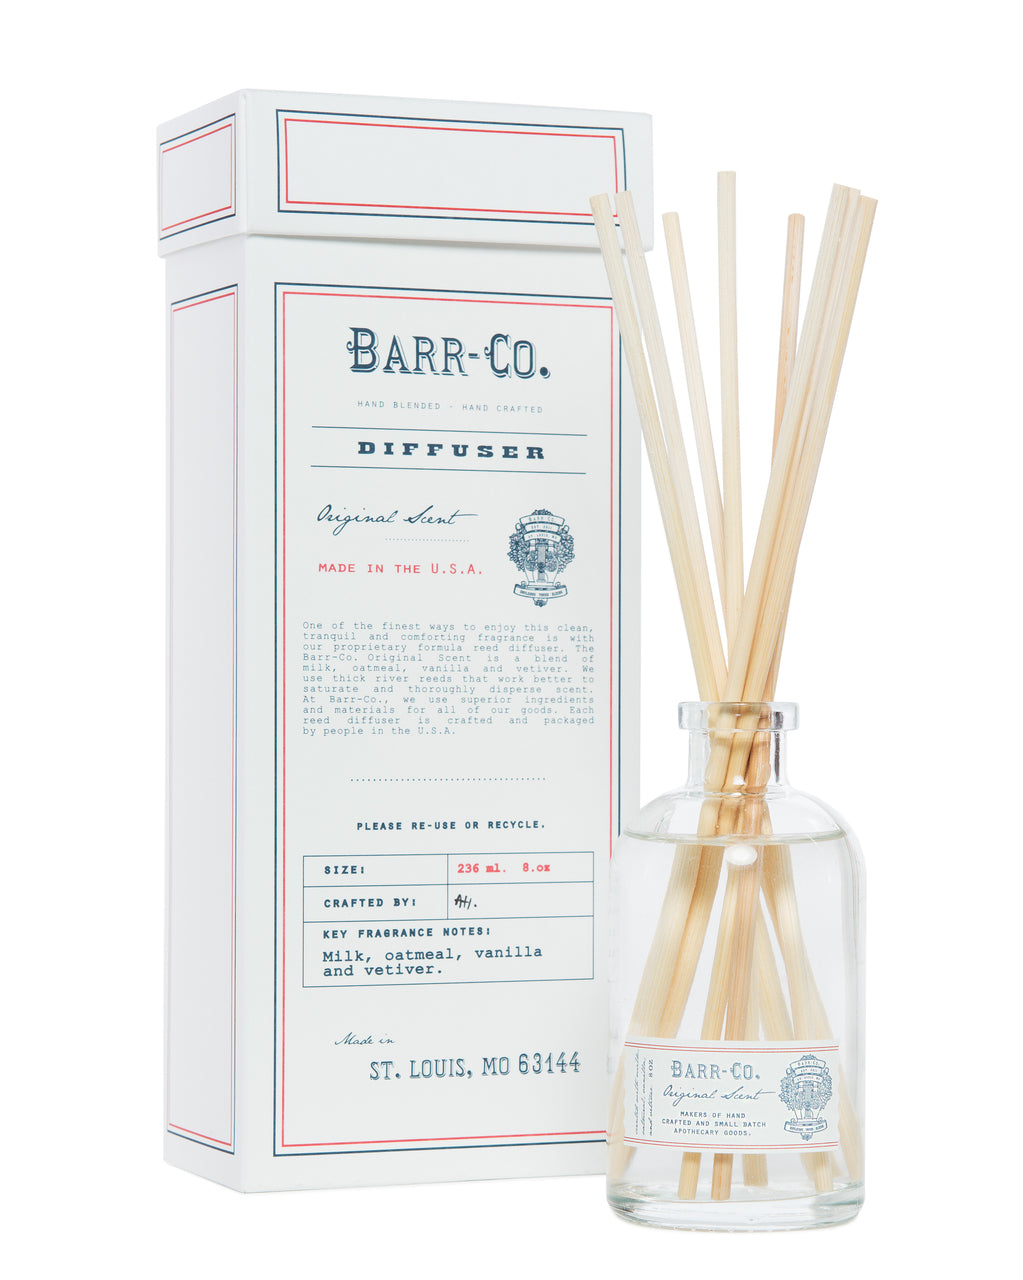 Barr-Co Diffuser Gift Box Set